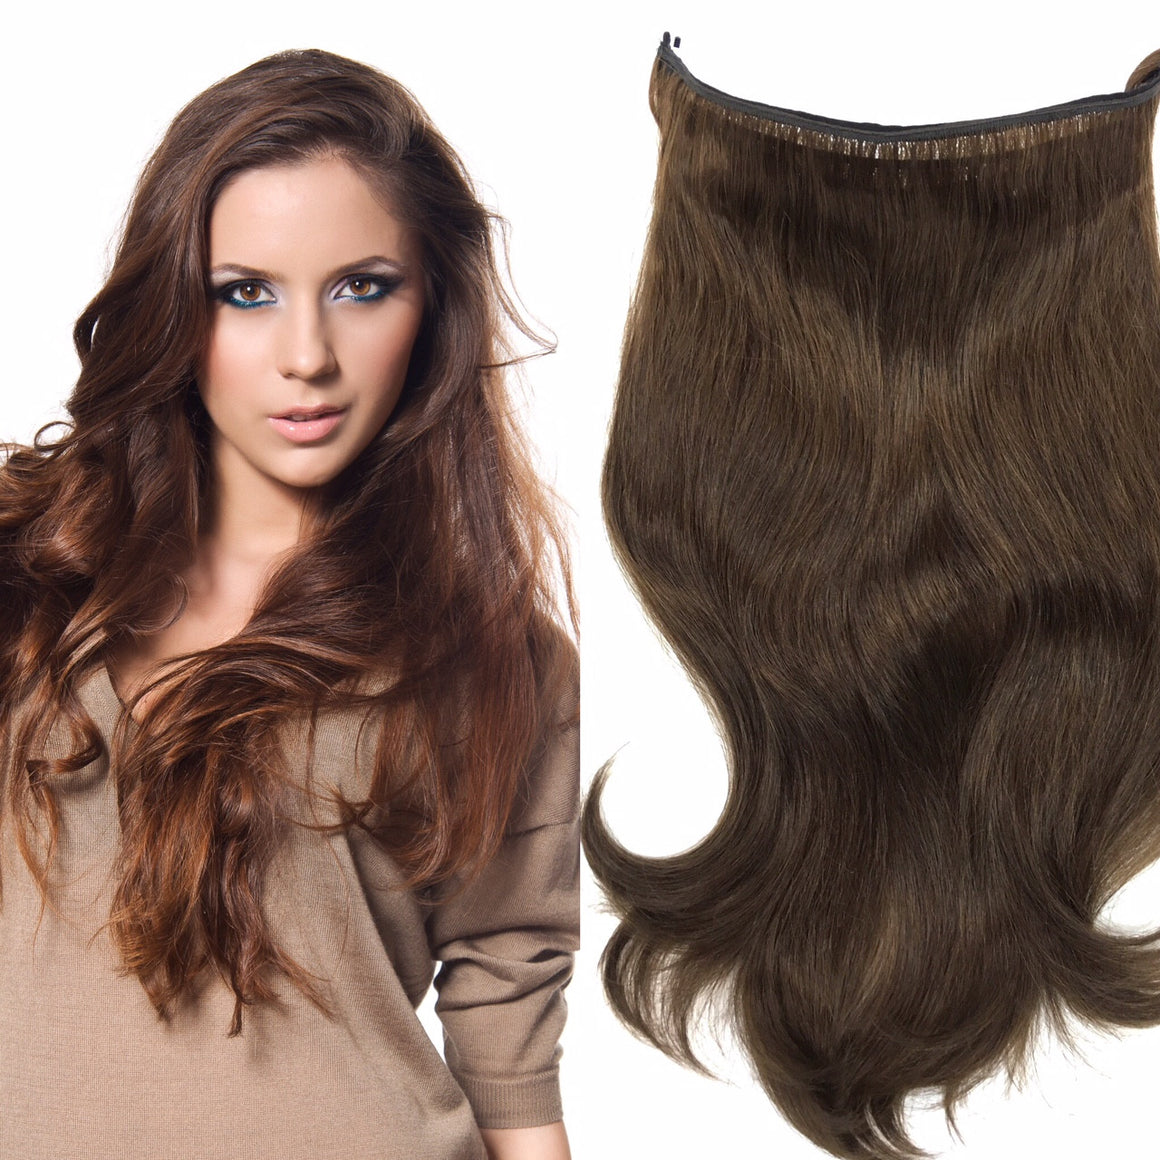 Easy Hair Extensions - Wired Hair Extensions- Dark Colors - Hairesthetic